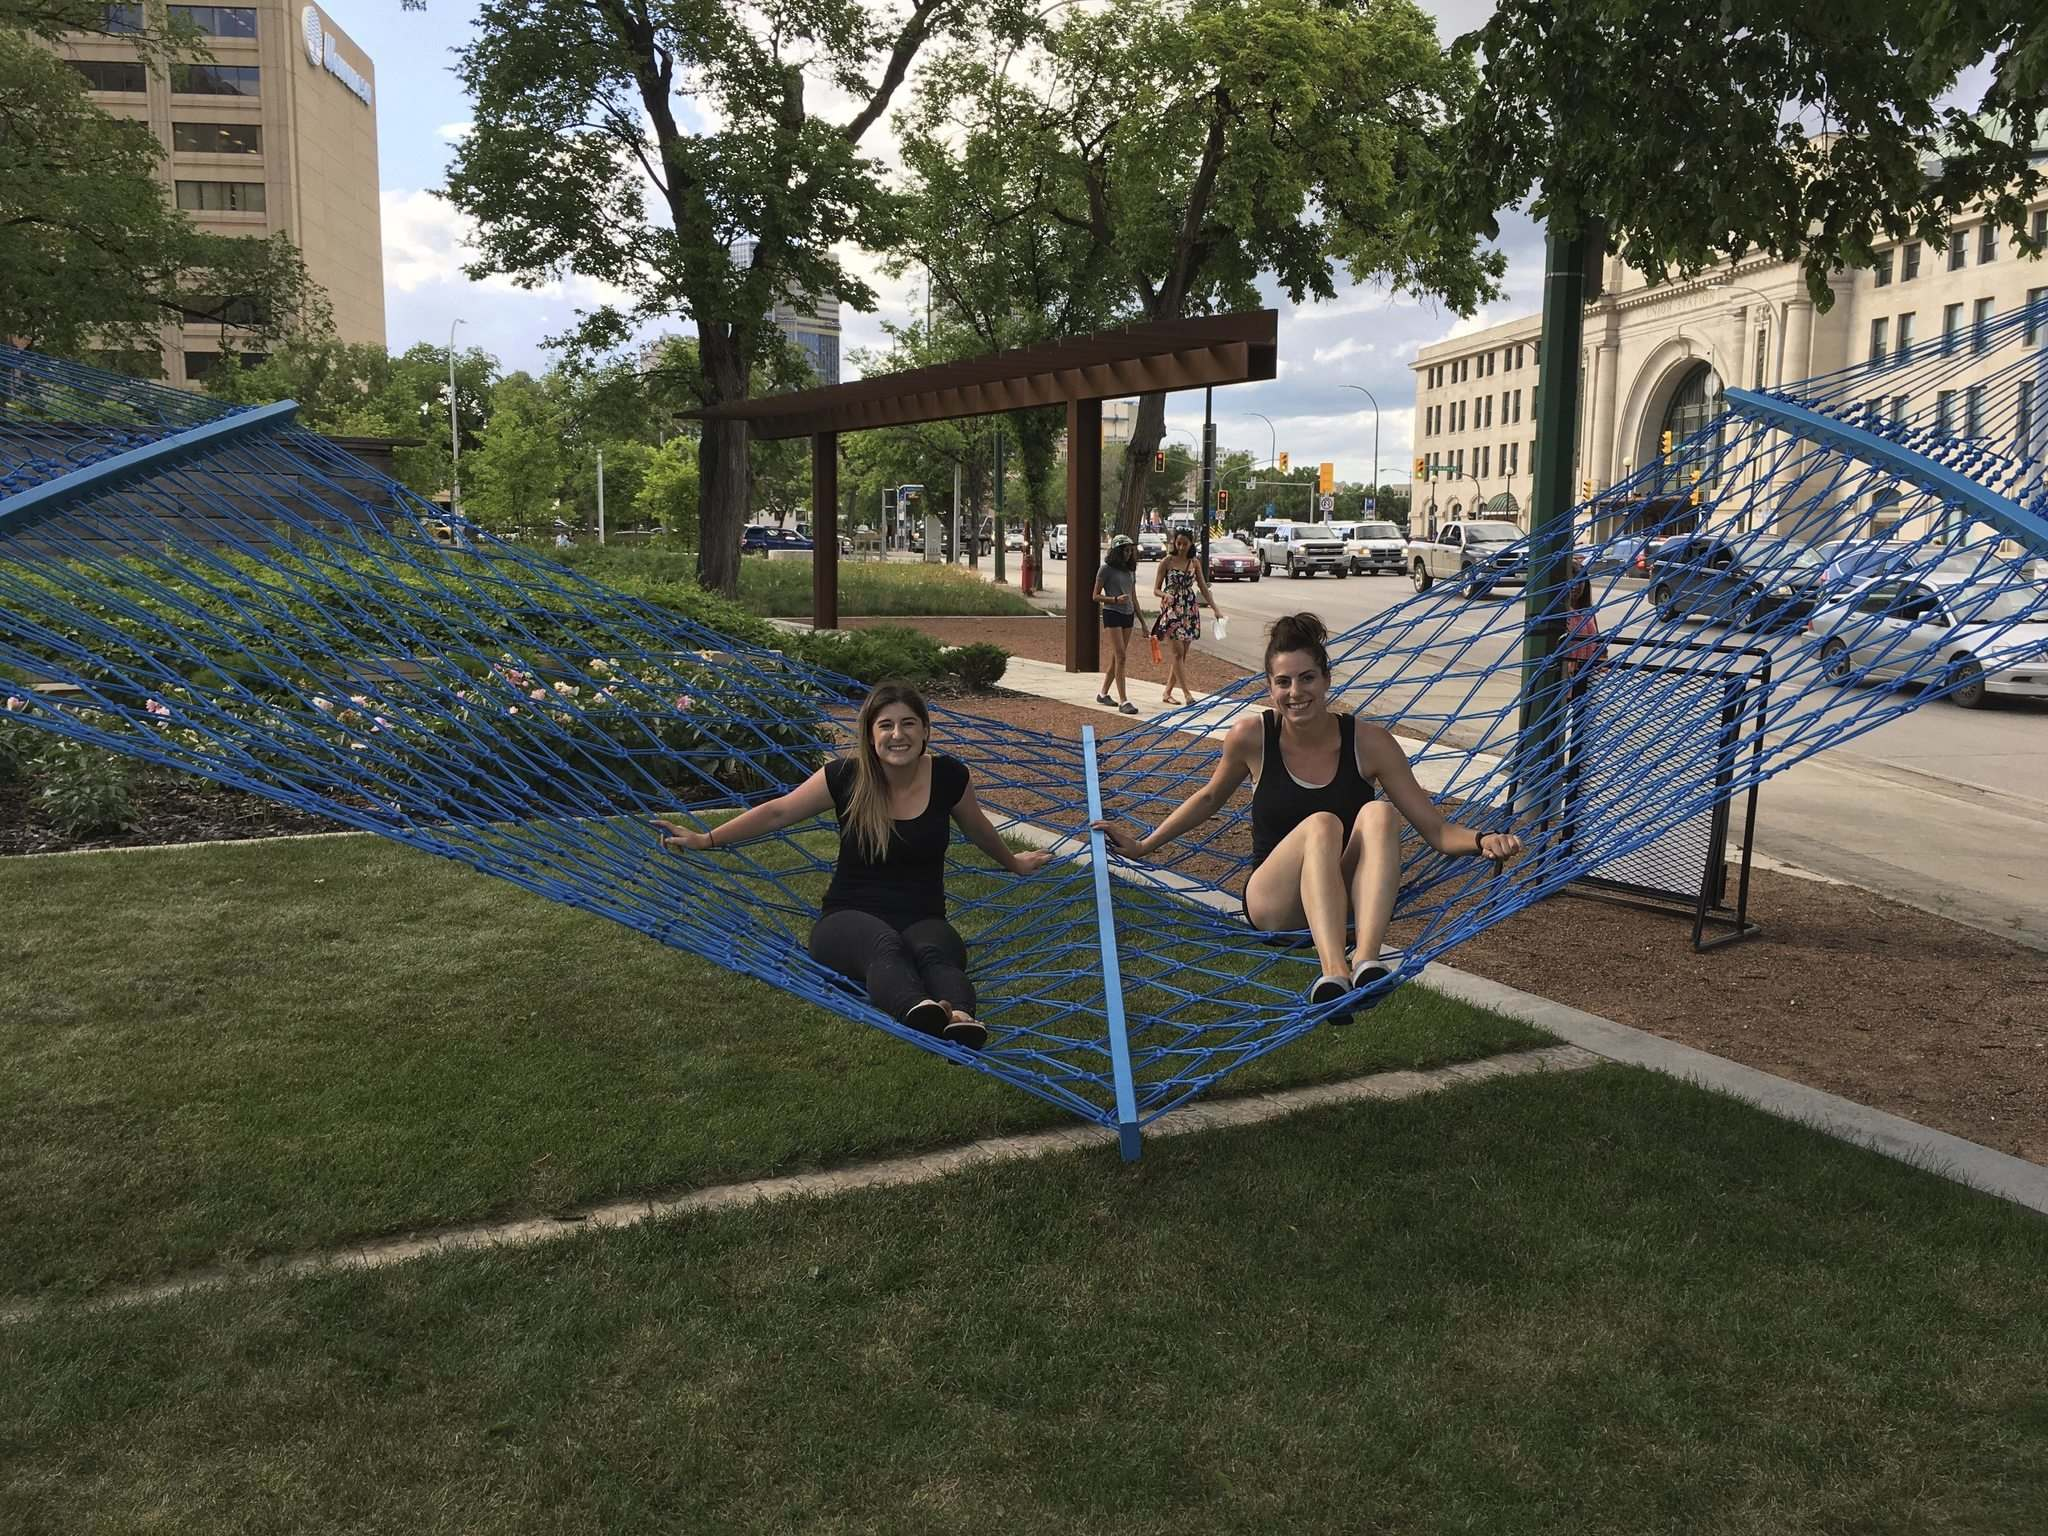 SUPPLIED</p><p>Landscape architects Rachelle Kirouac (left) and Danielle Loeb of HTFC Planning &amp; Design enjoy the giant hammock portion of their installation, the Weave.</p>